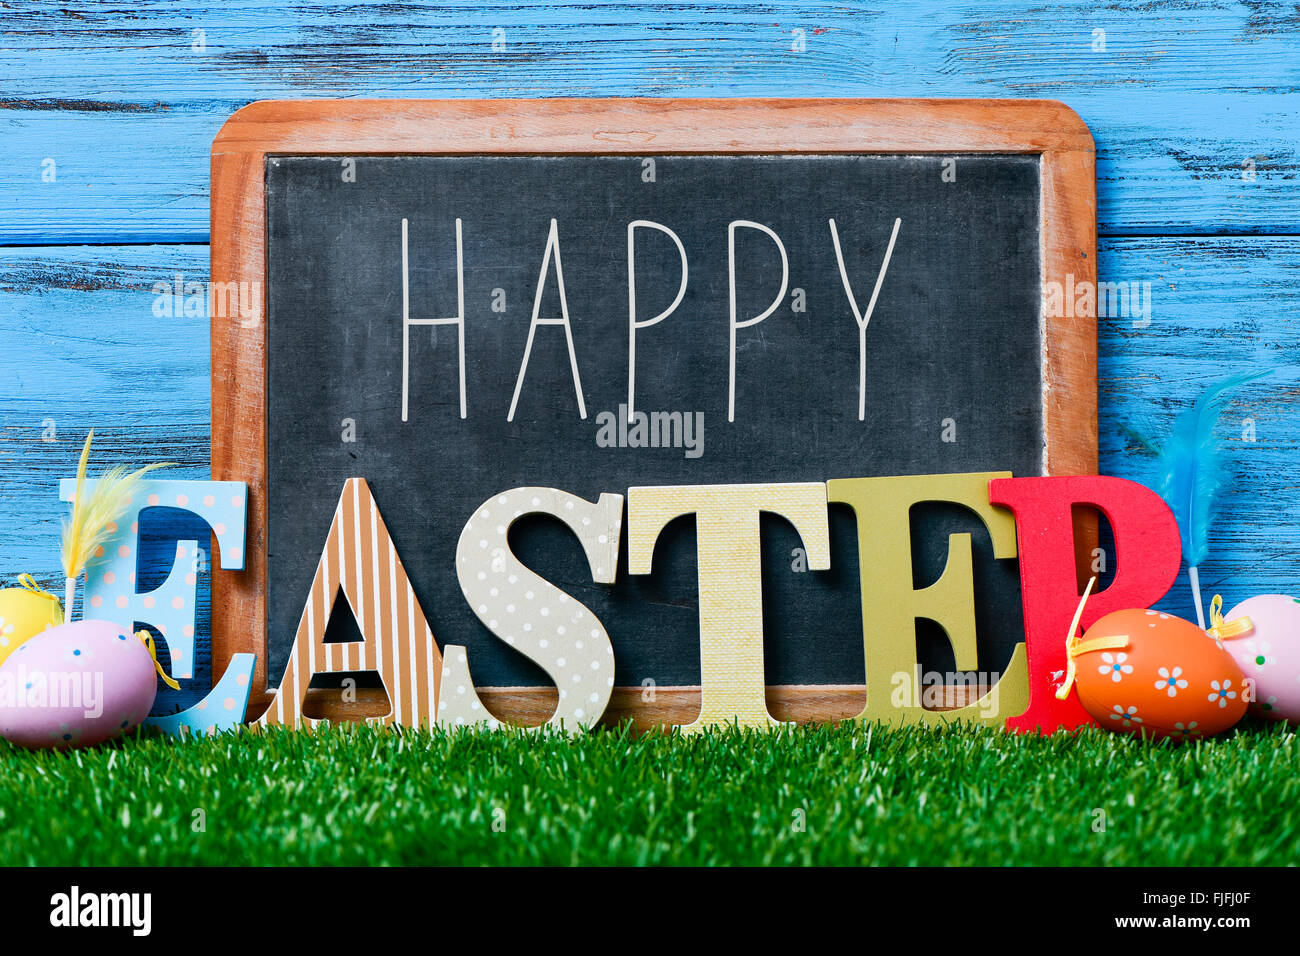 some decorated eggs on the grass, and the text happy written in a chalkboard and three dimensional letters forming - Stock Image